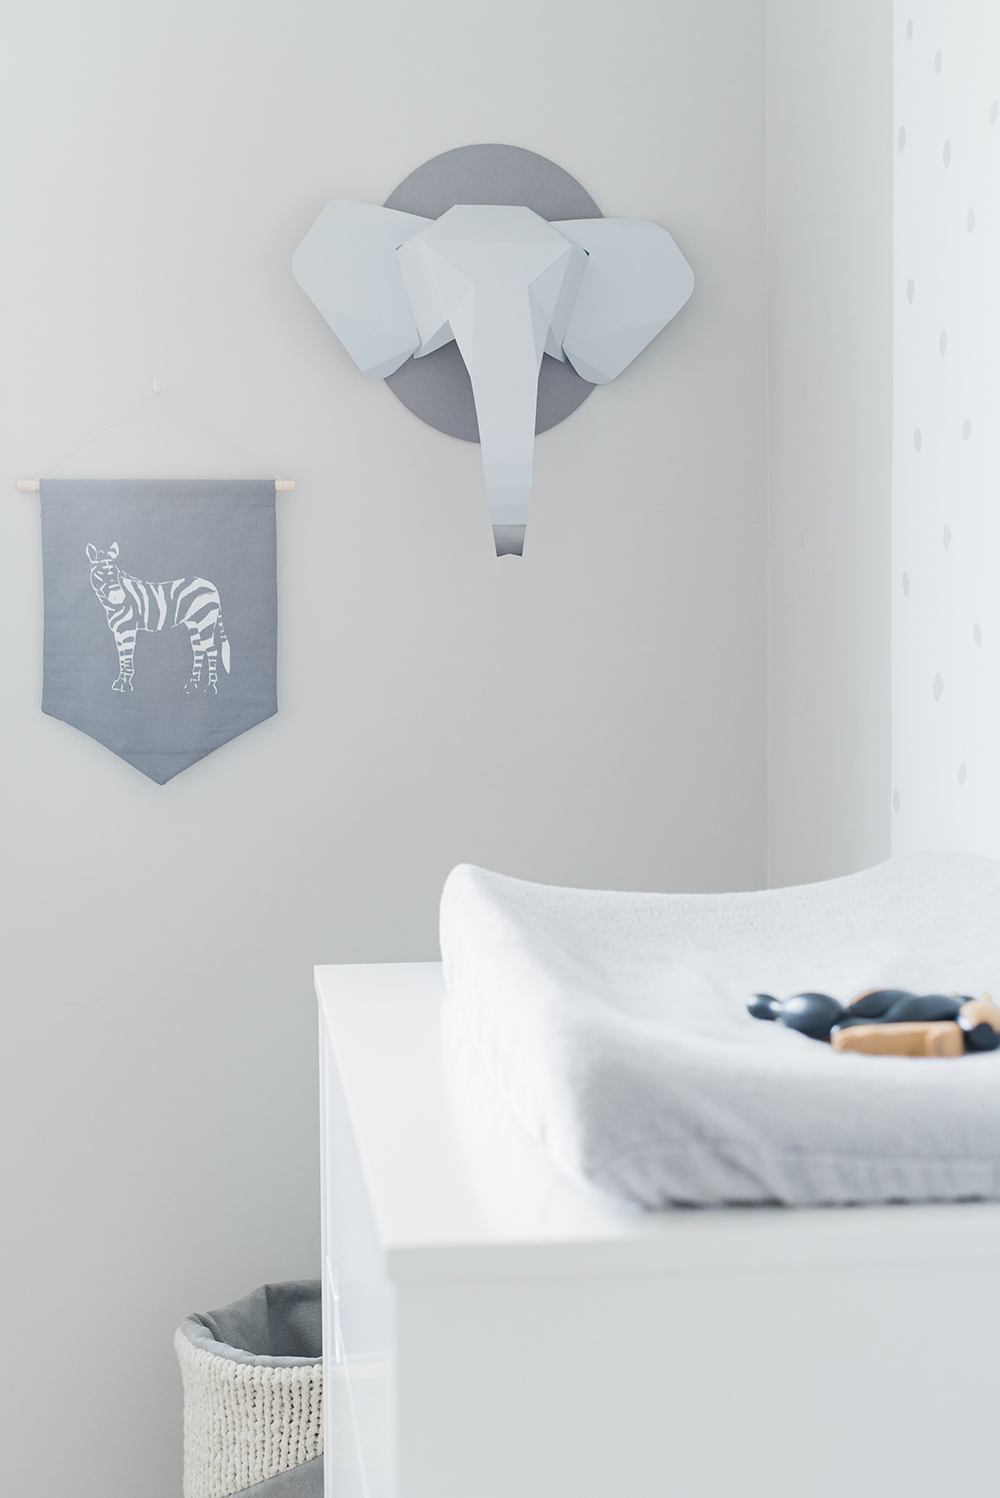 Péa les maisons. Pretty details in grey : a handmade basket, a zebra banner and an origami elephant head wall decor